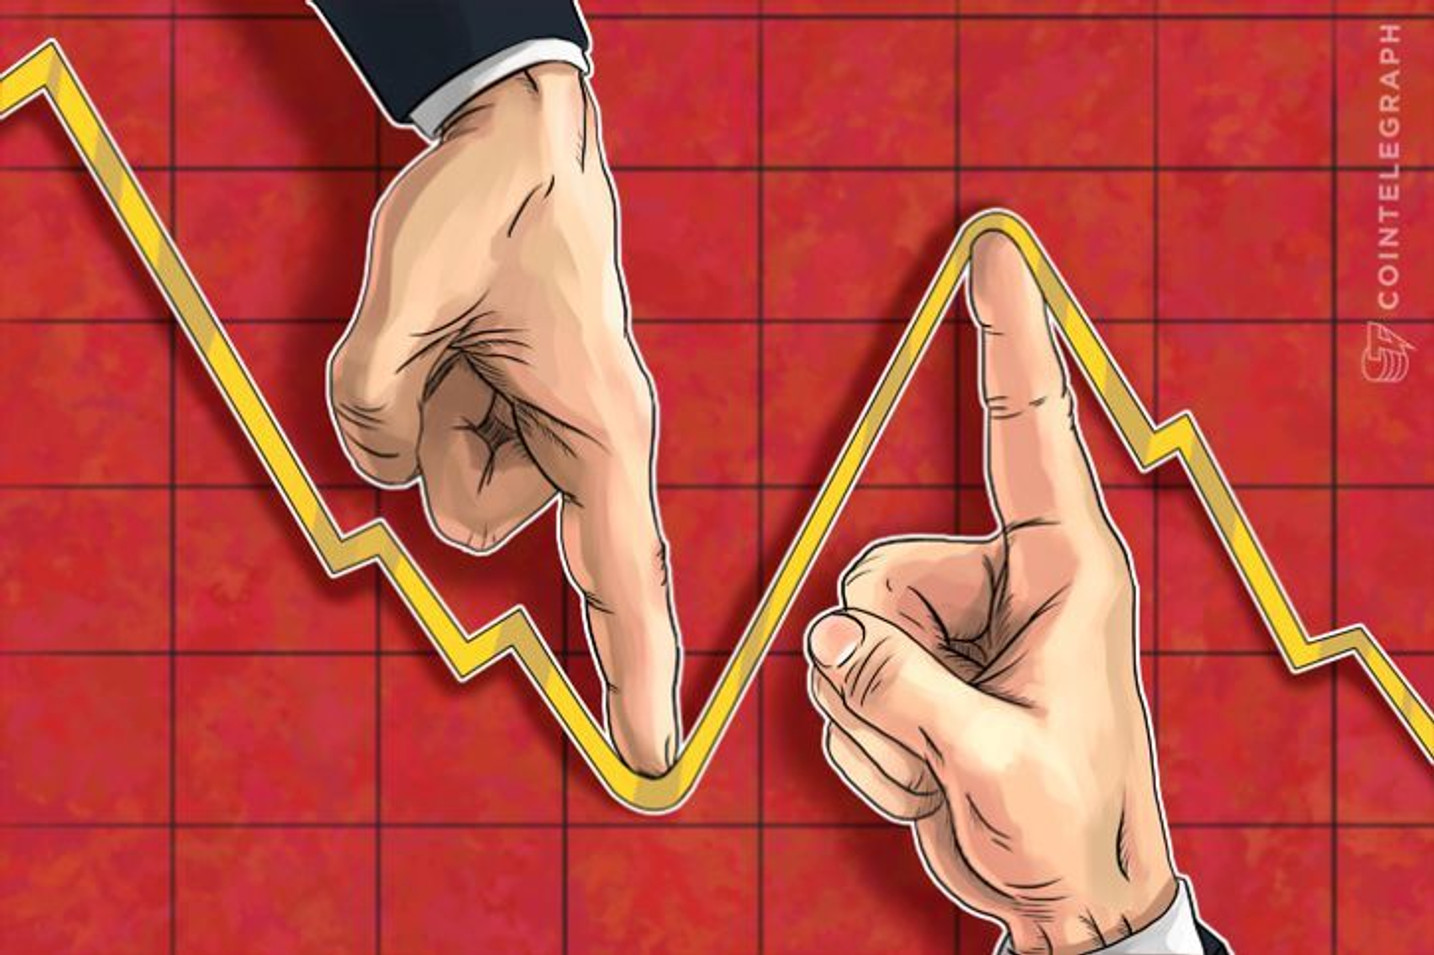 Crypto Market Sees Slight Rebound During SEC, CFTC Hearings